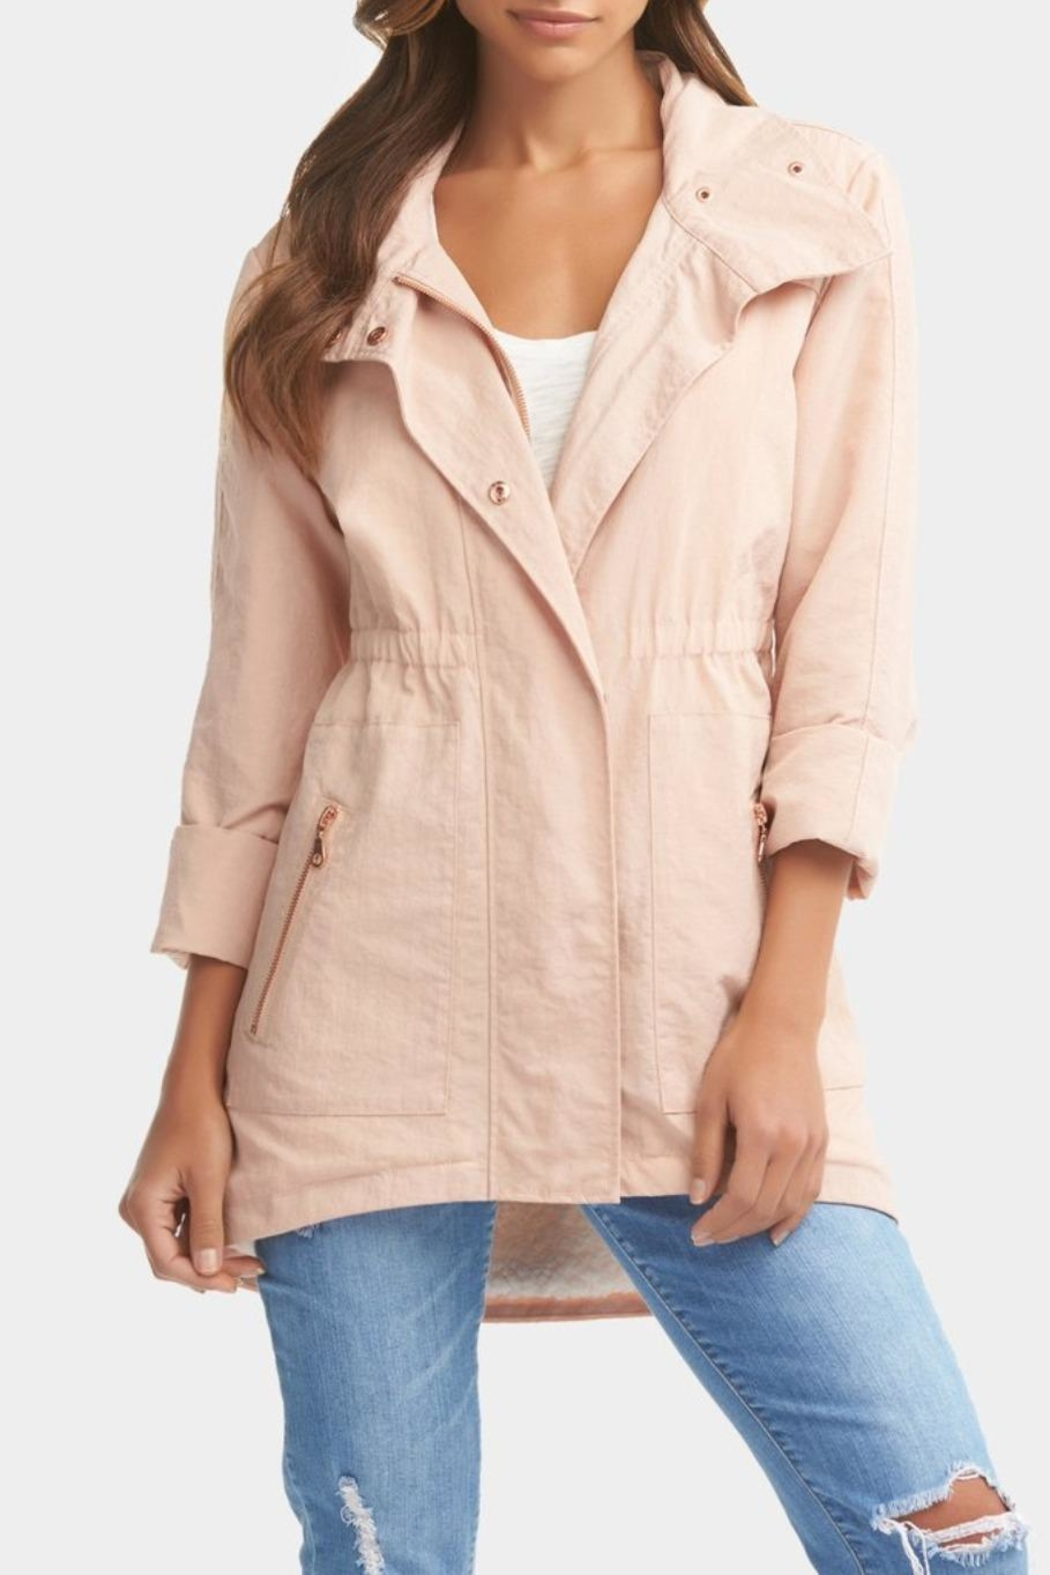 Tart Collections Rory Pink Jacket - Main Image